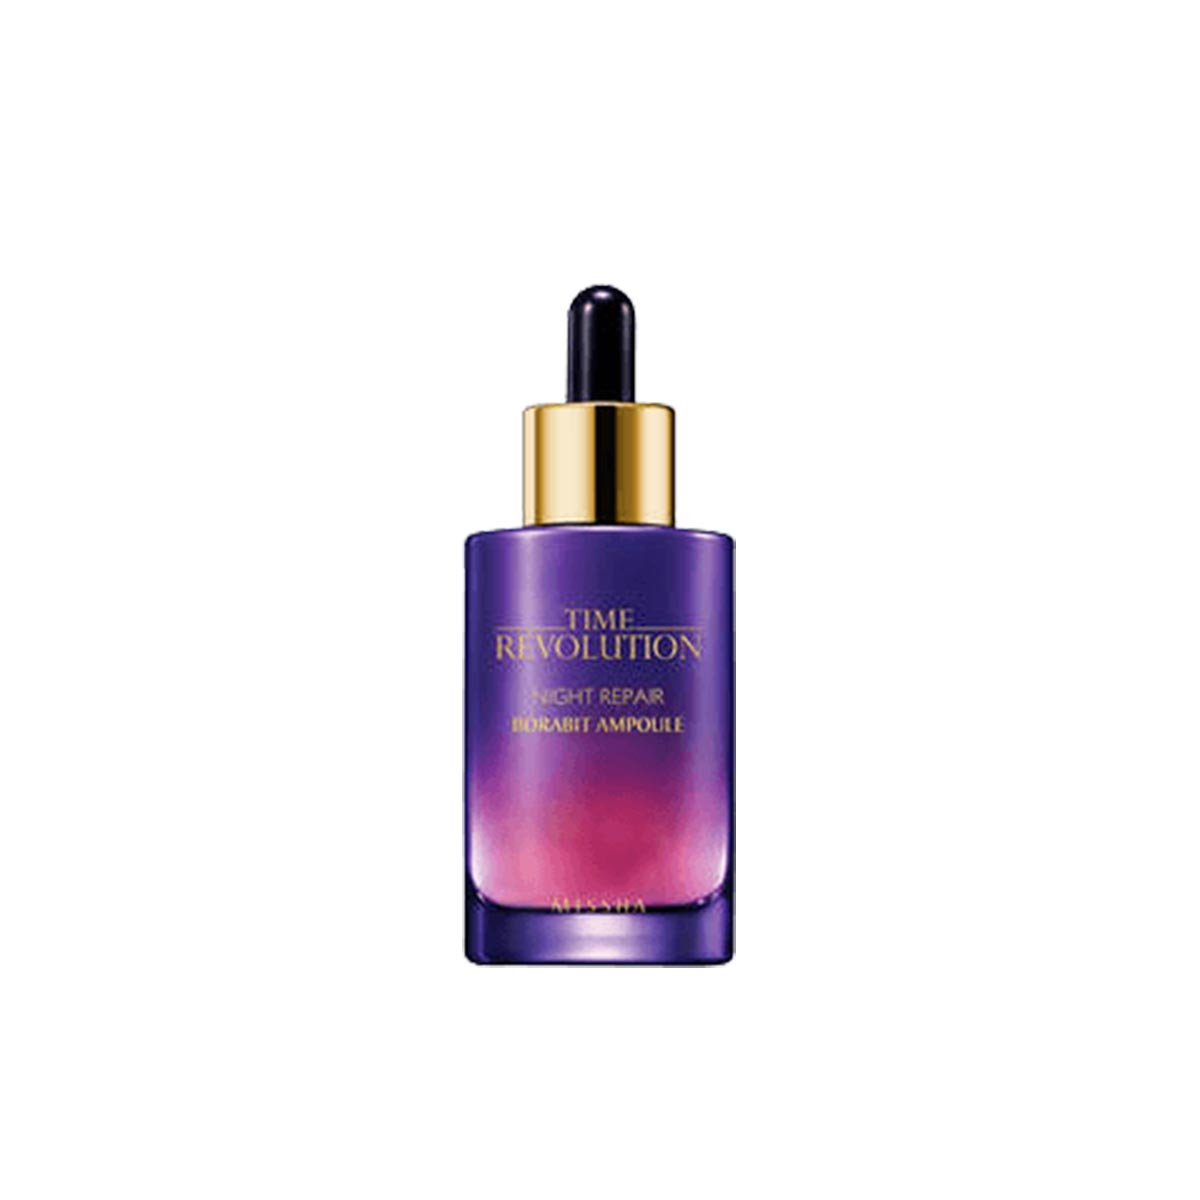 MISSHA-Time-Revolution-Night-Repair-Borabit-Ampoule-Miss-Eco